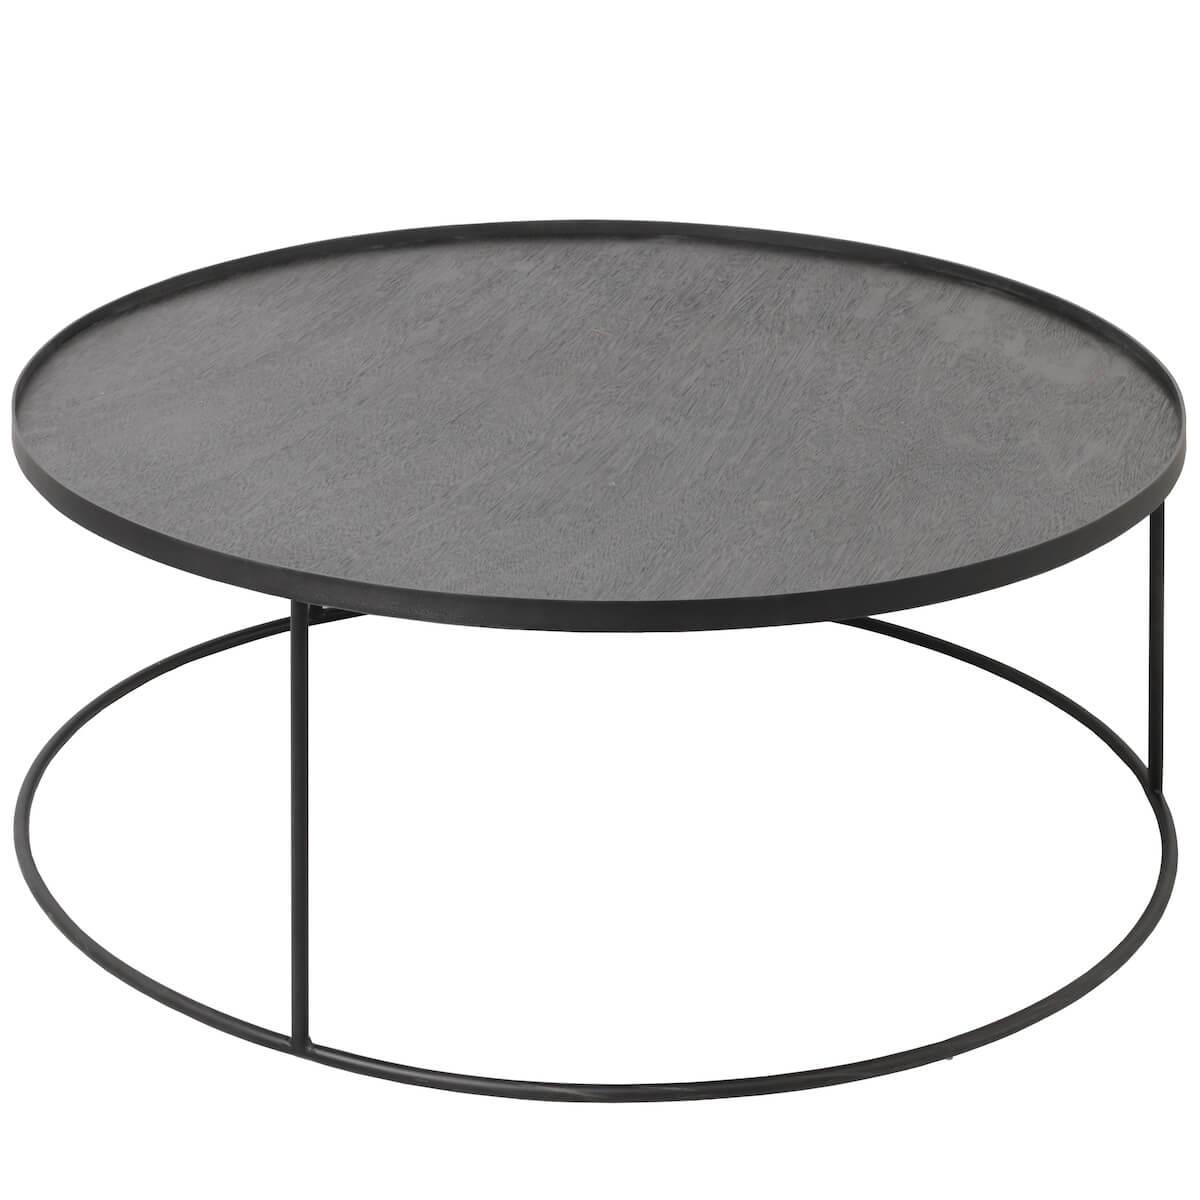 Table basse ronde 93cm TRAY XL Ethnicraft